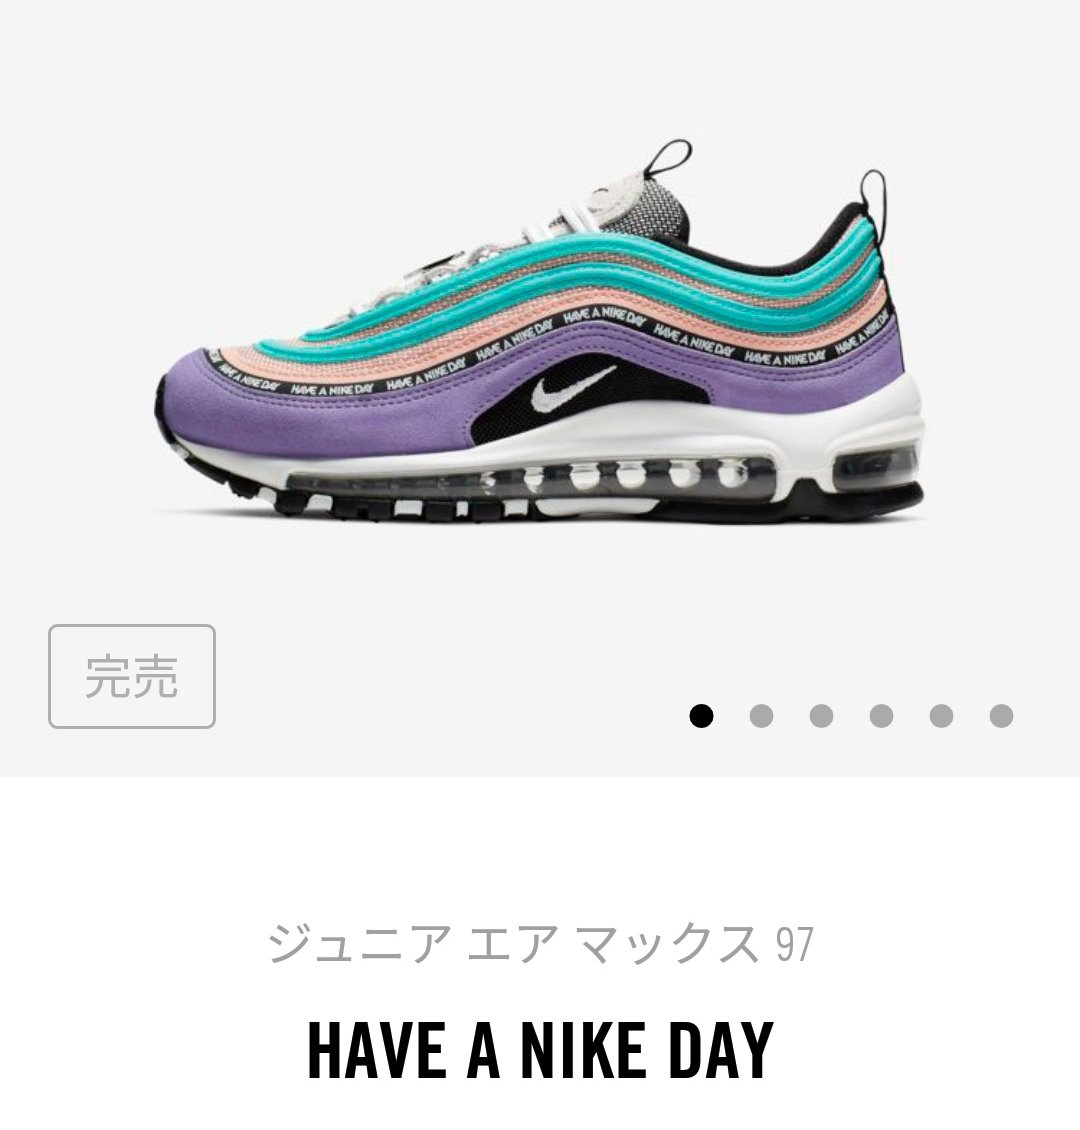 "sports shoes 25278 181b8 ... ア ナイキ デイ"" (NIKE AIR MAX 1 ND ""Have A Nike Day"")  BQ8929-500   https   www.fullress.com 2019 02 01-nike-air-max-1-nd-have-a-nike-day-bq8929-500   ..."